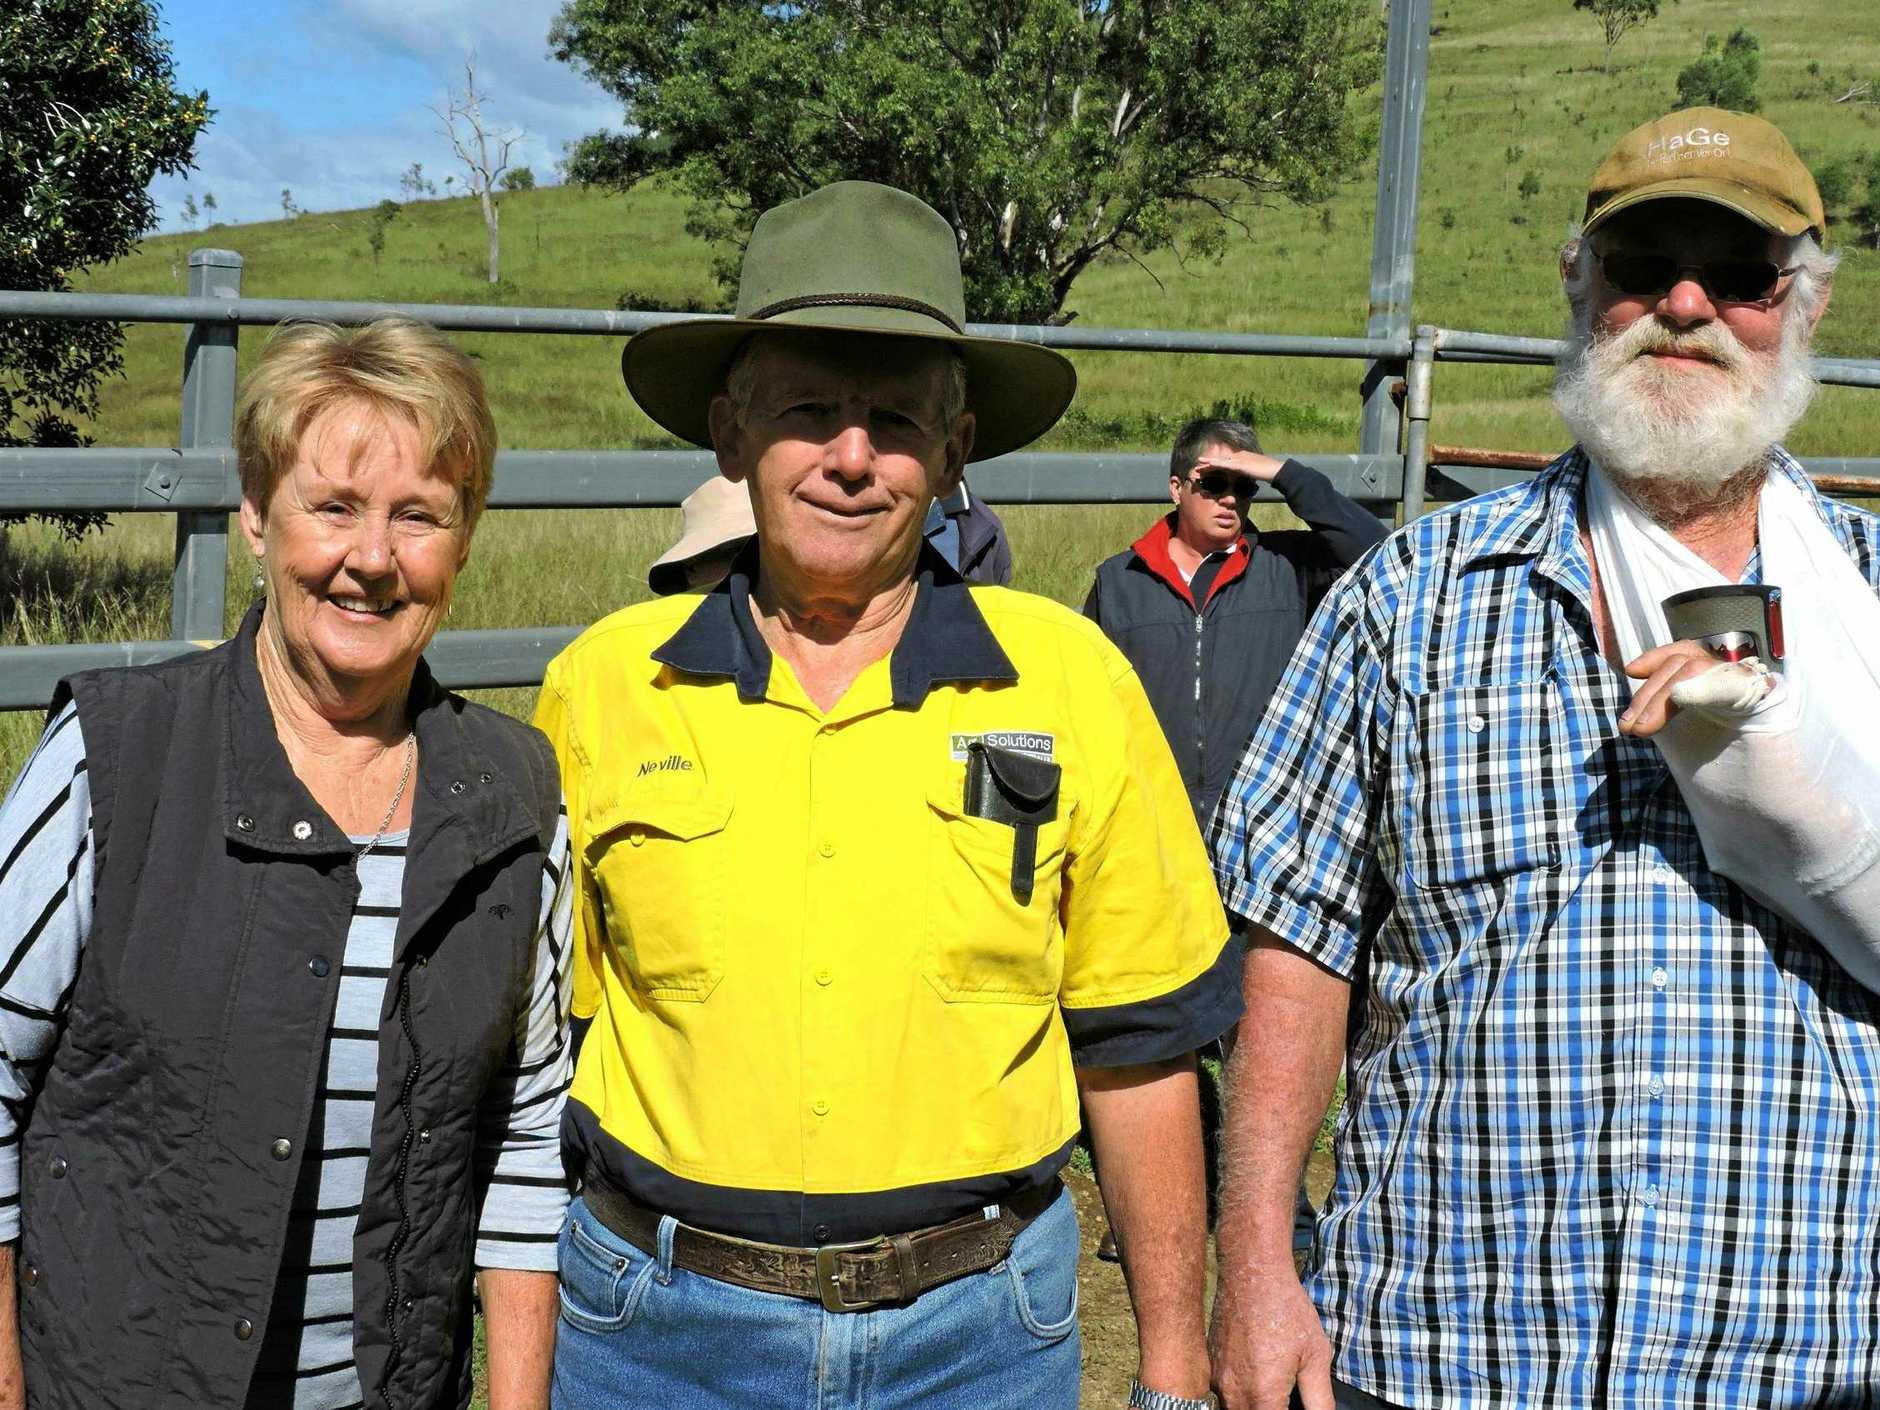 CARCASS CLASSIC. 2259 -  Classic committee treasurer Neville Zerner (centre) with Lesley and John Groves, of The Nut Farm at Mary's Creek who have been exhibiting cattle at the Classic for many years. The Groves entered nine limousion and limousion cross cattle this year.